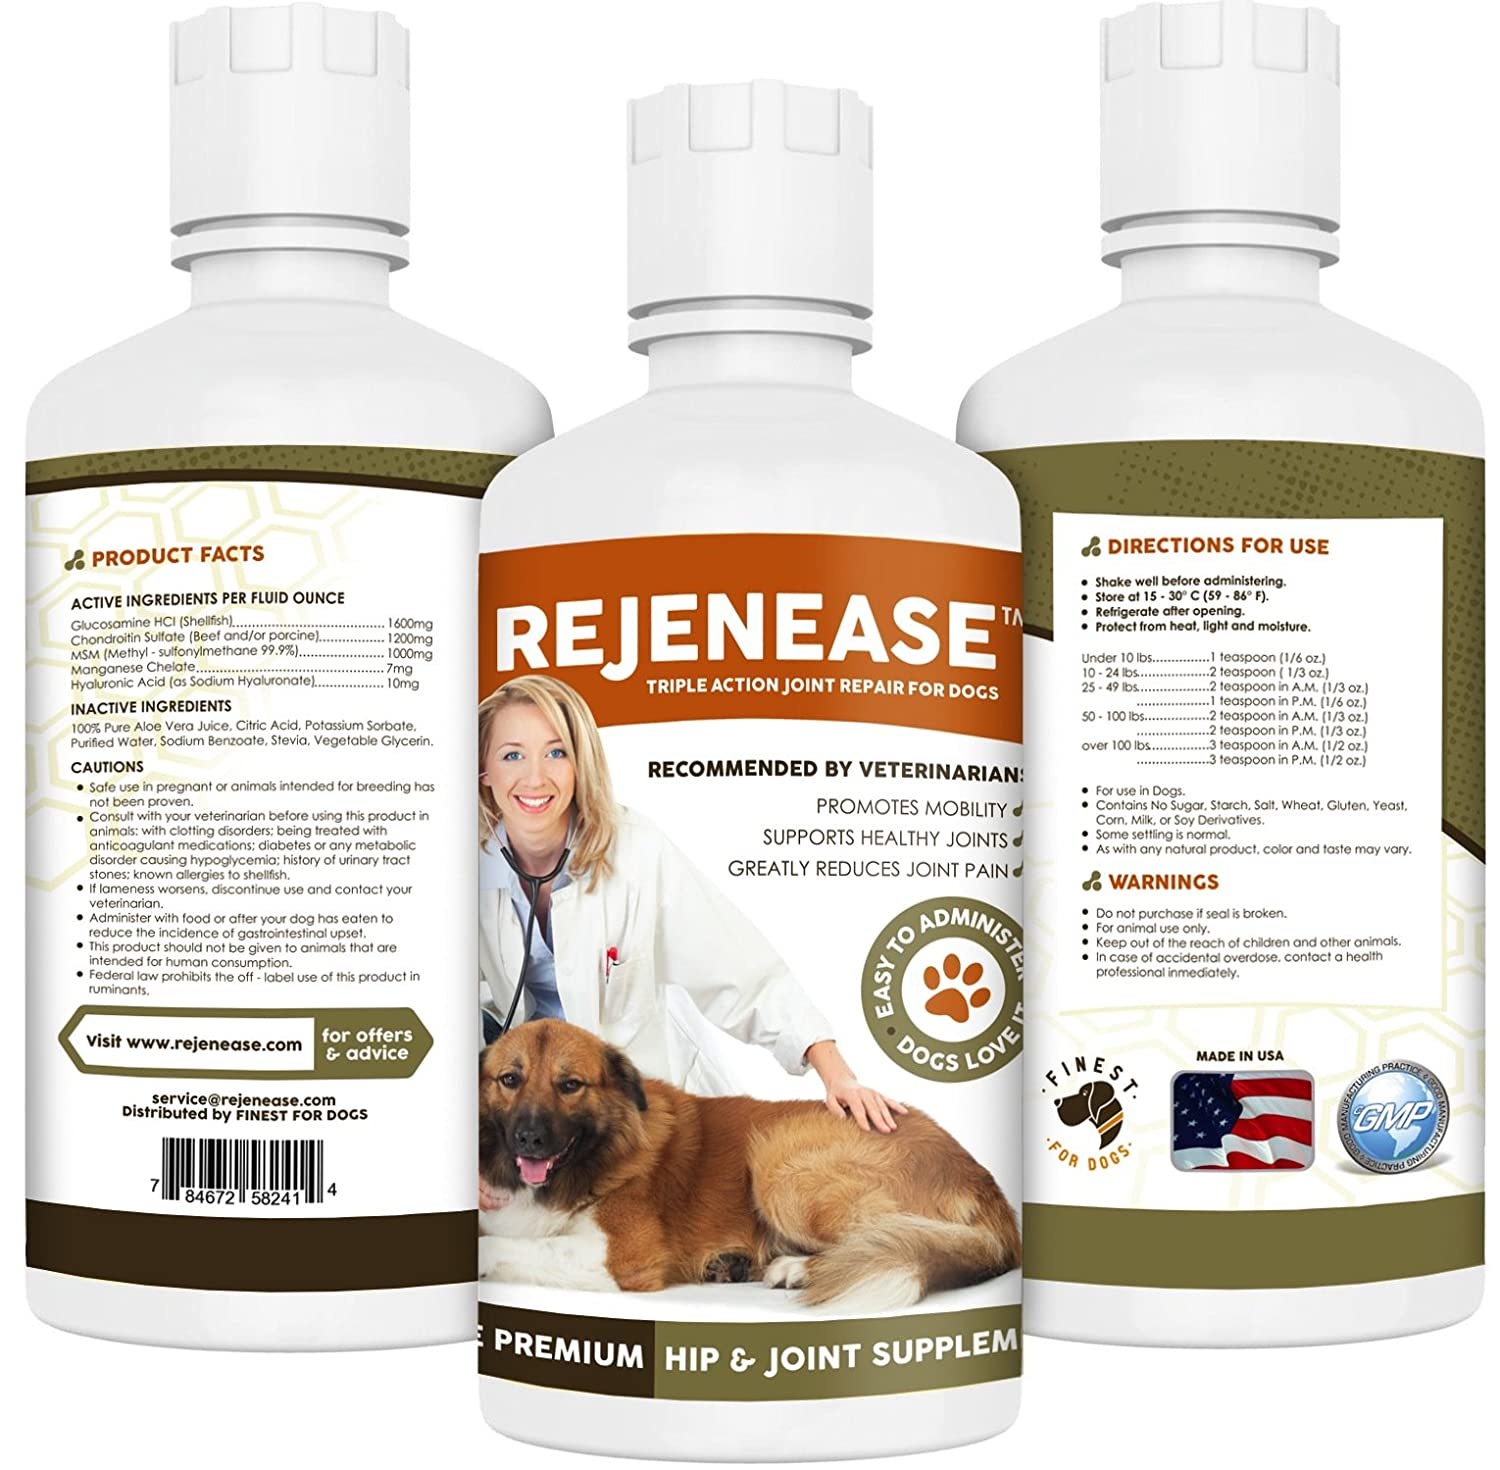 Glucosamine for Dogs - Hip and Joint Supplement for Maximum Mobility, Pain Relief and Joint Health for Dogs. All Natural Liquid Glucosamine, Chondroitin & MSM. Large 32 Oz Bottle. Made in USA. Results in 30 Days or Your Money Back. natural remedies for joint pain in knees pet pain relief chiropractic devices